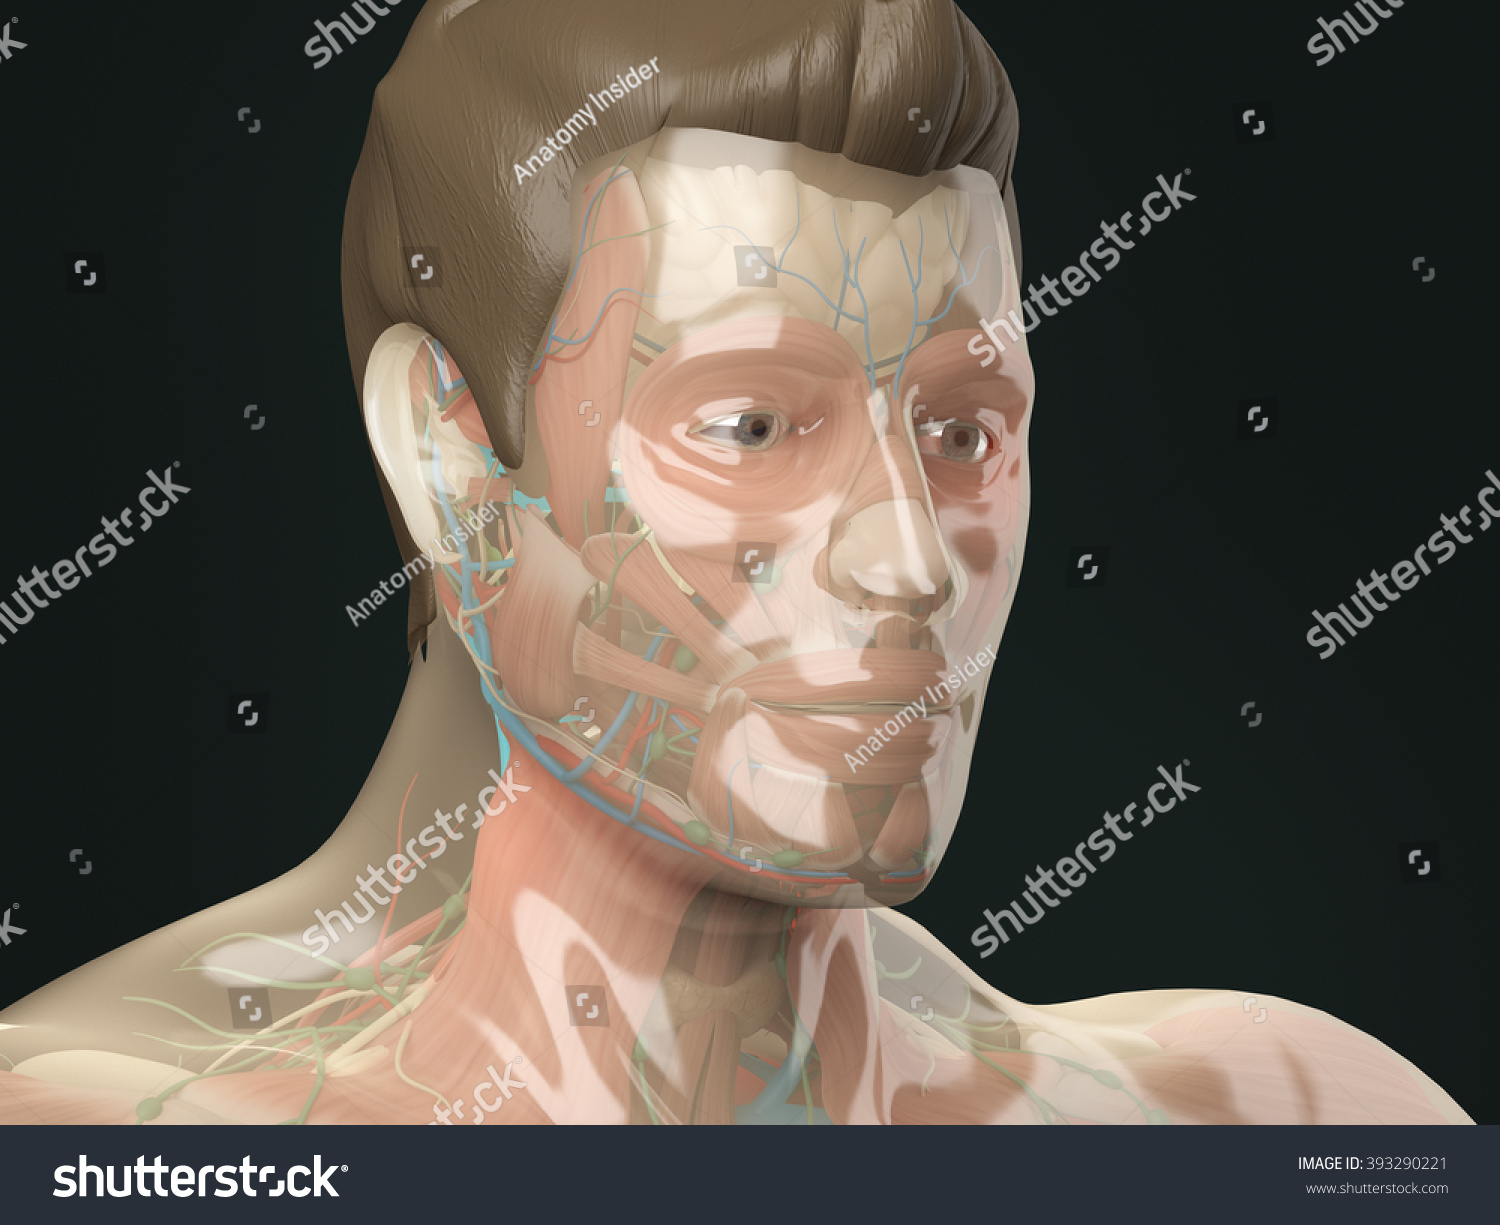 Royalty Free Stock Illustration of Glass Anatomy Human Anatomy See ...